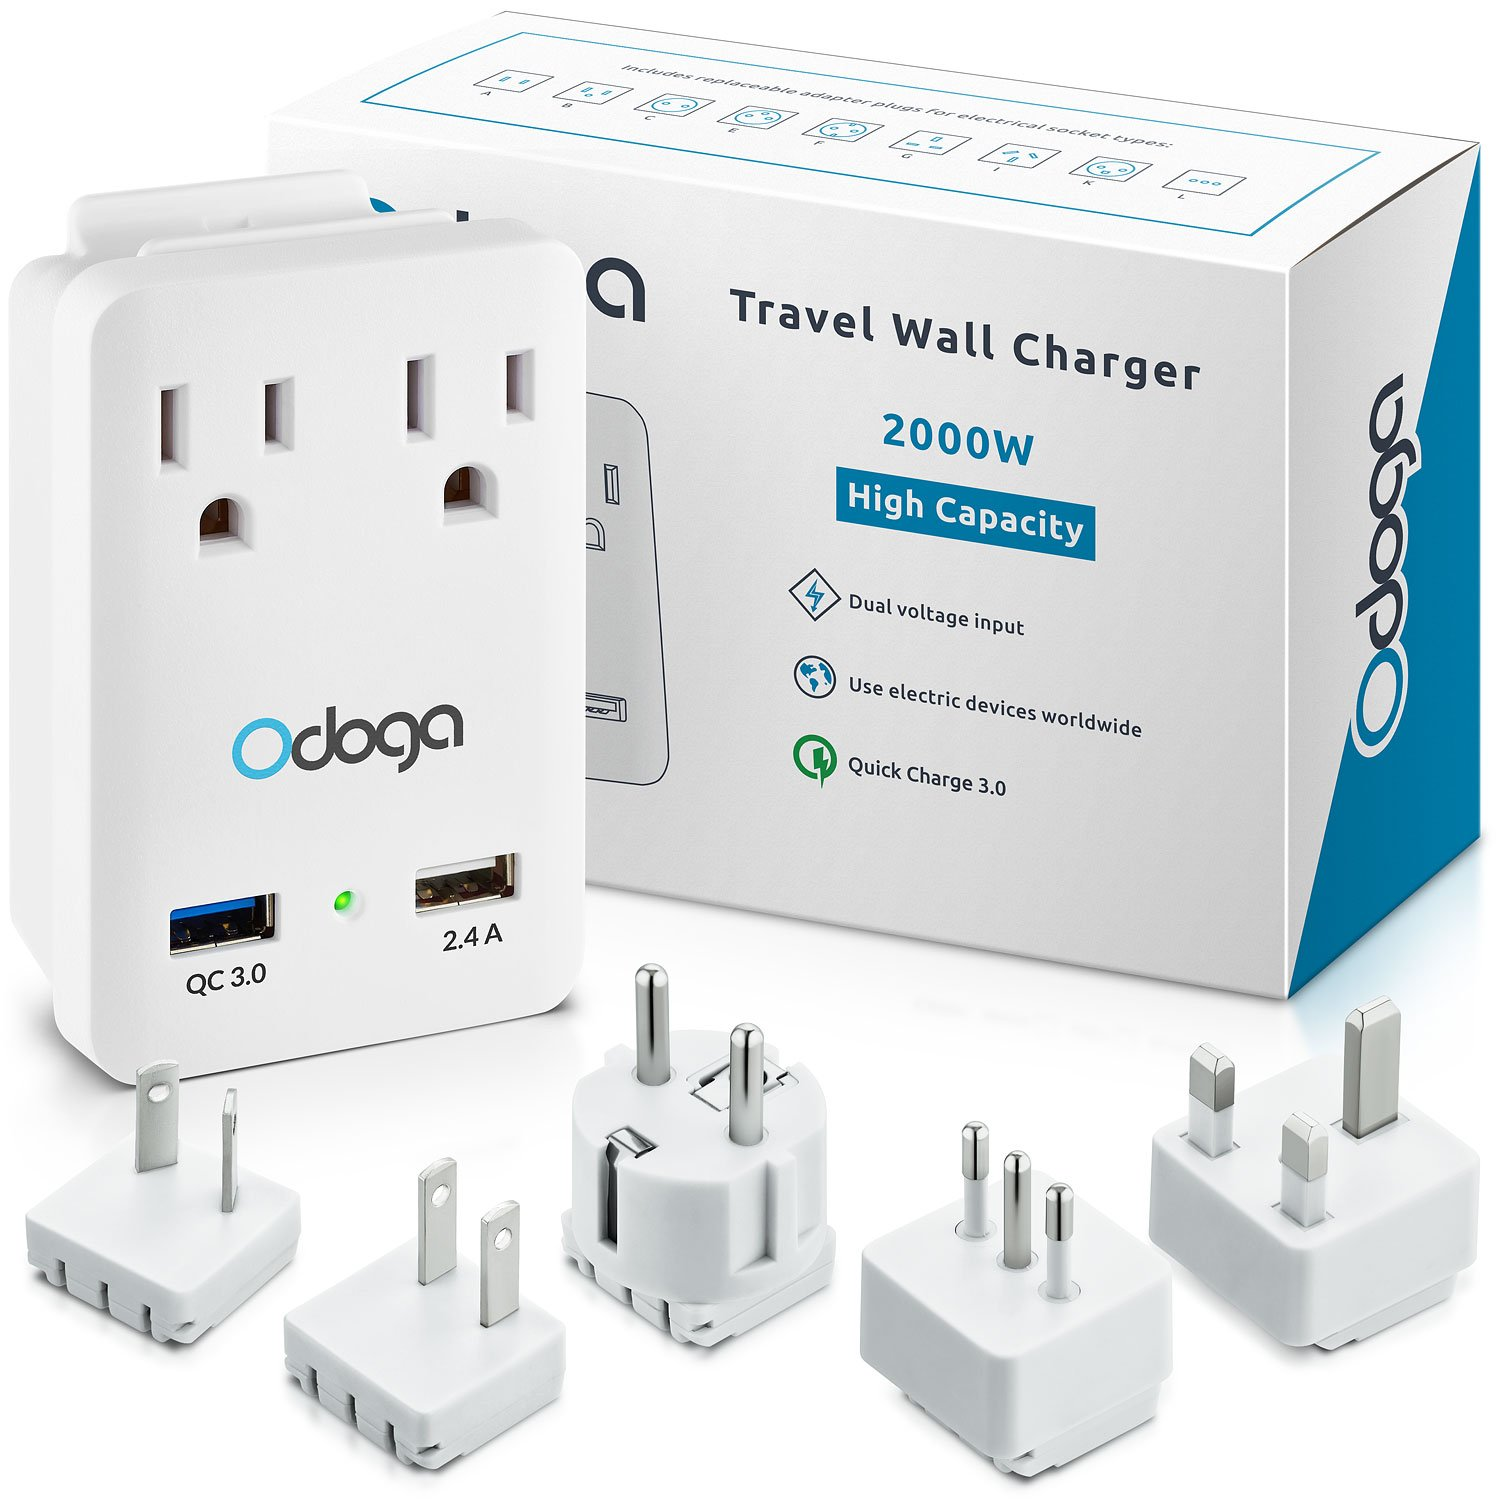 Odoga World Travel Adapter Kit ~ 2 Powerful 2000W AC Outlets ~ Quick Charge 3.0 & 2.4A USB Ports ~ Comes with Universal Travel Adapters For Europe, UK, China, Australia, Japan & More